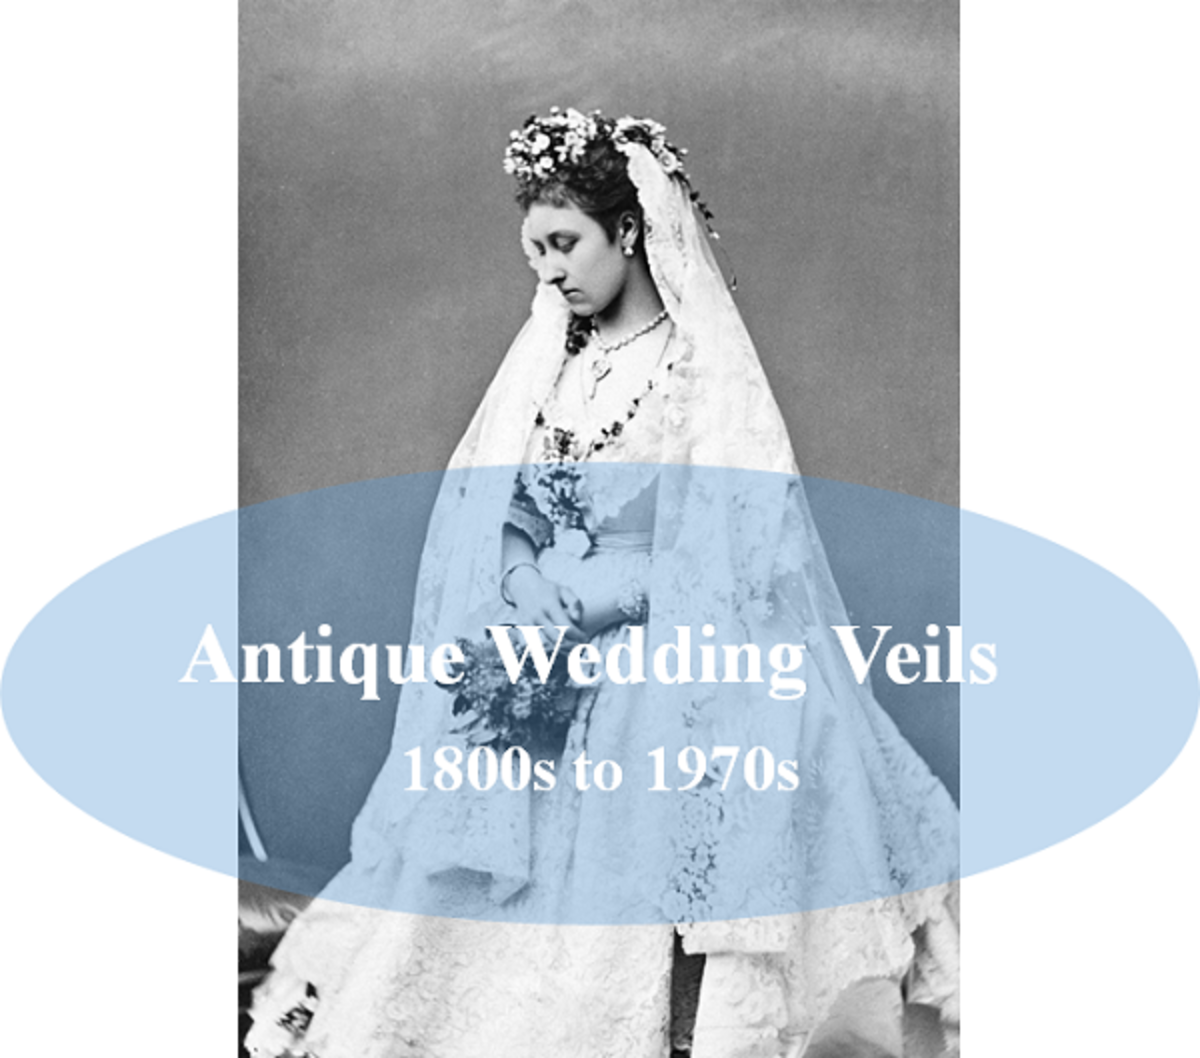 170 Years of Bridal Veil Styles (Wedding Veils of 1800s to 1970s)